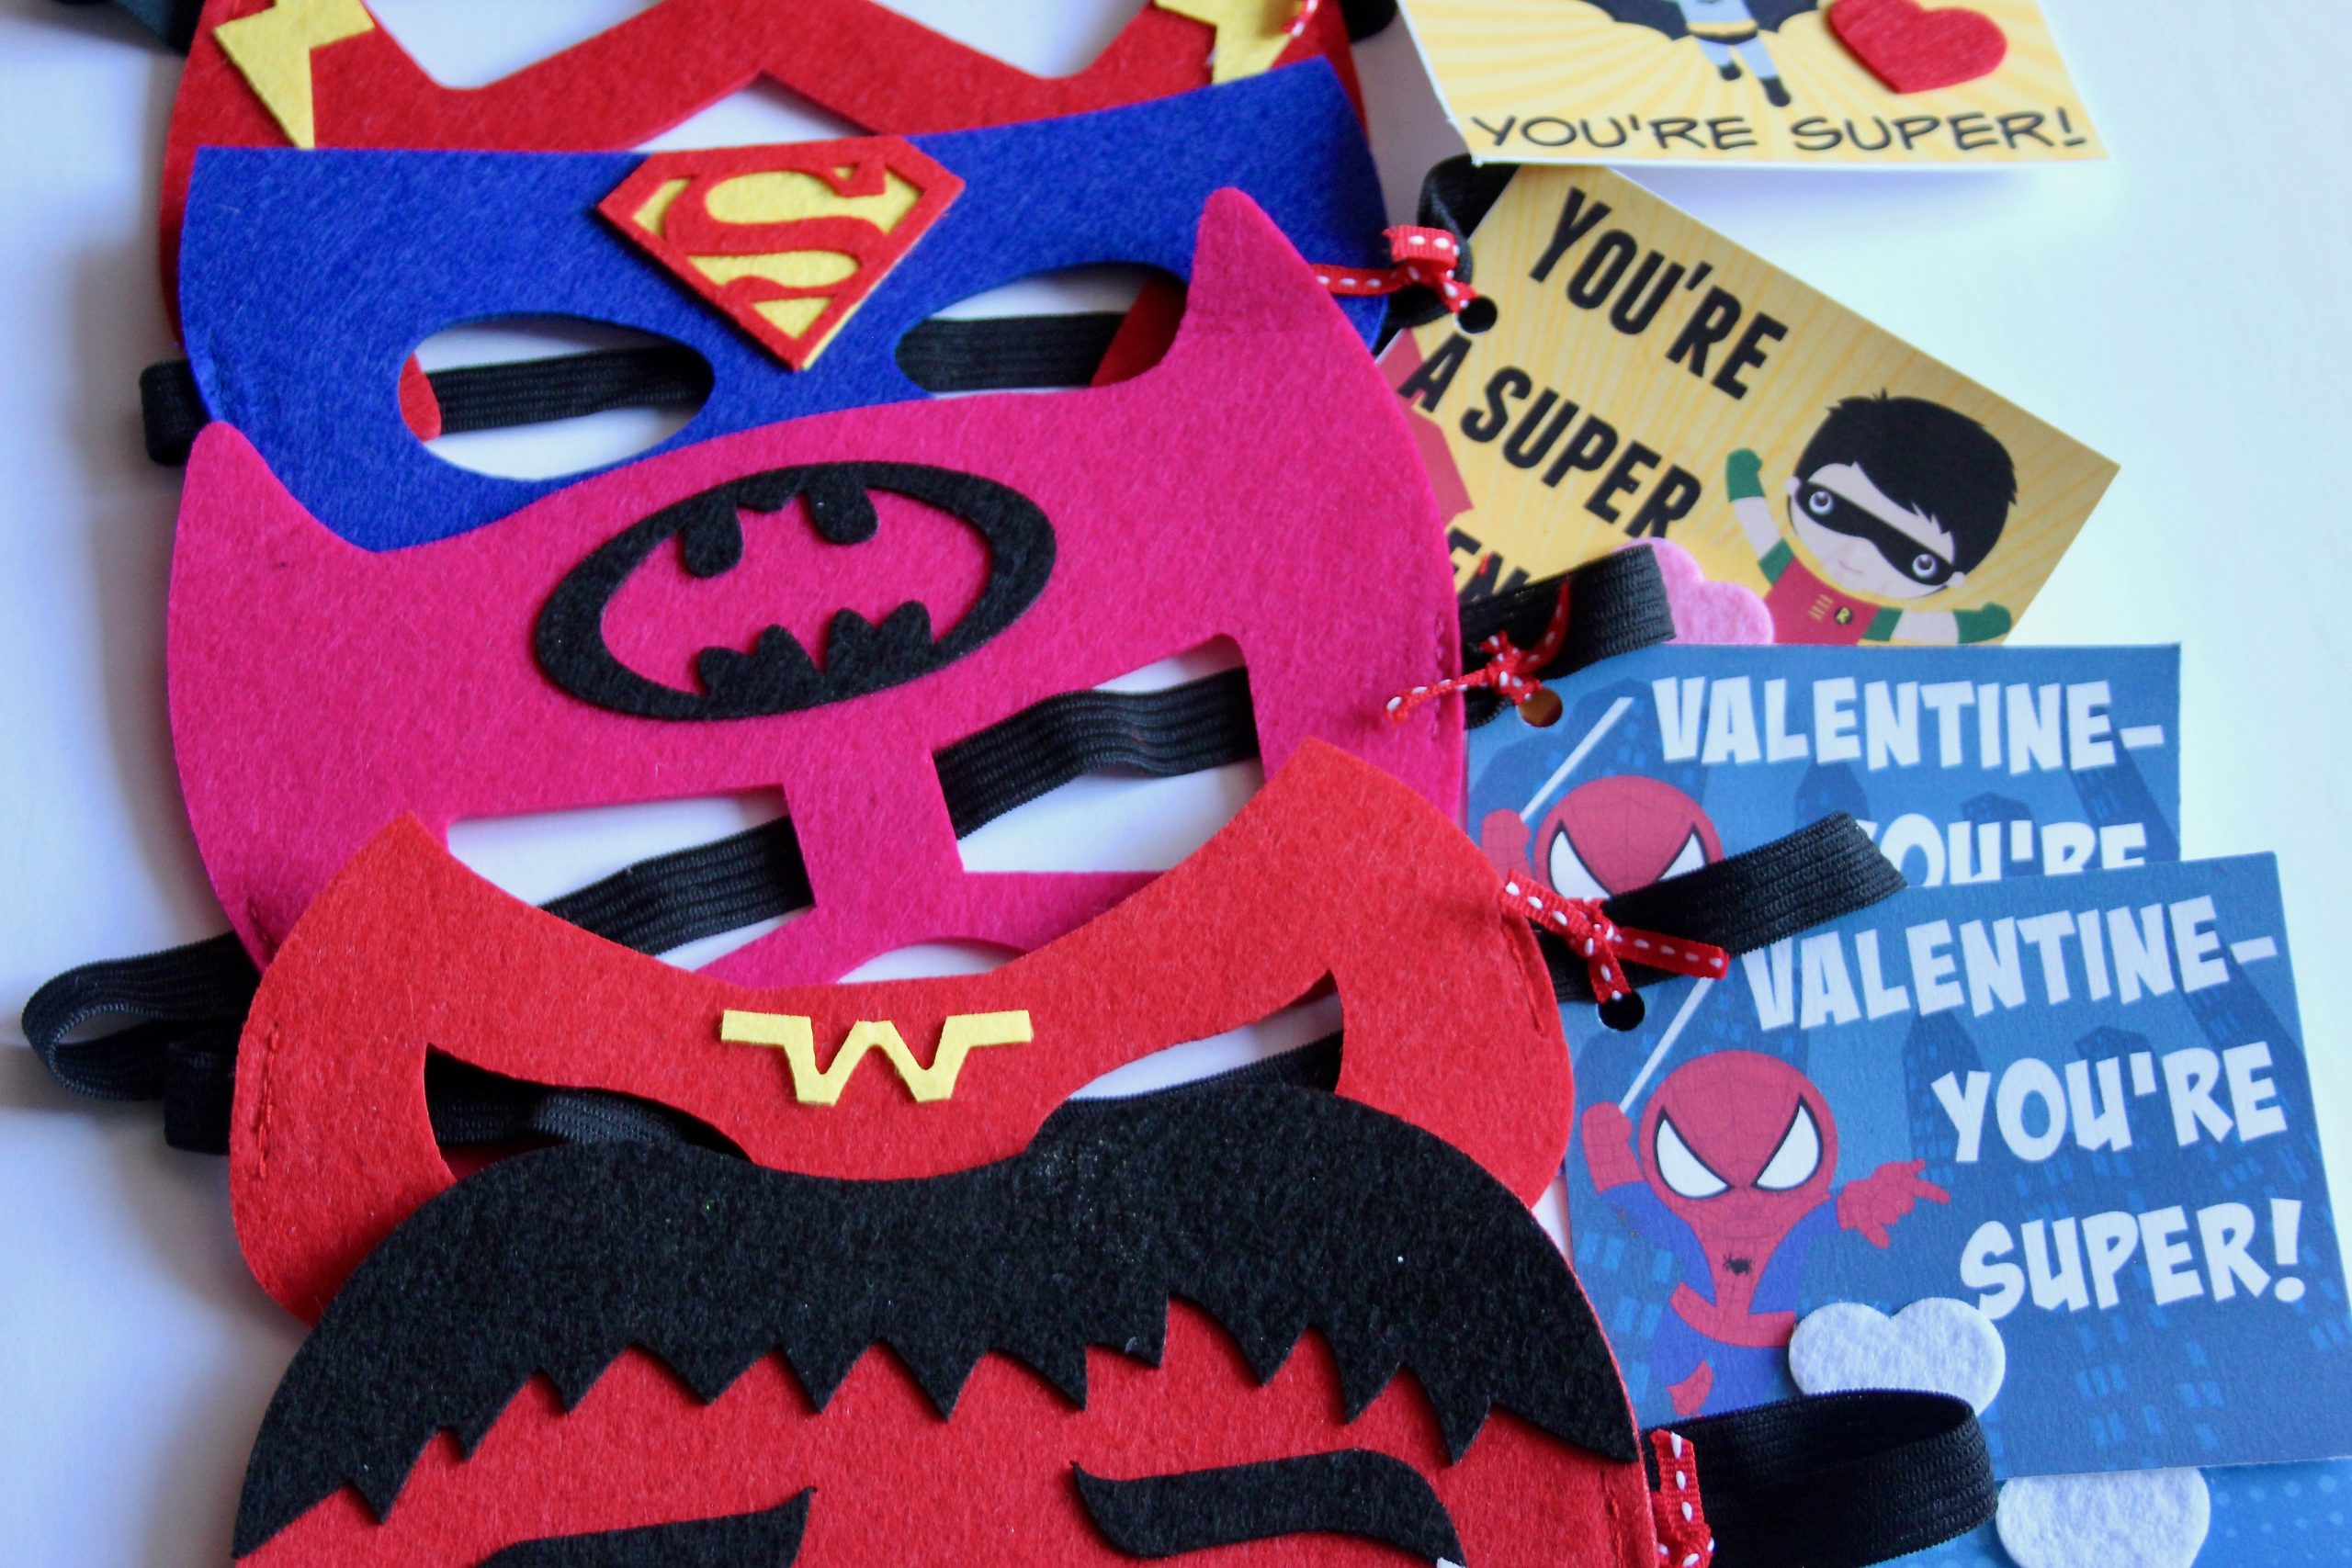 super awesome superhero valentines-1